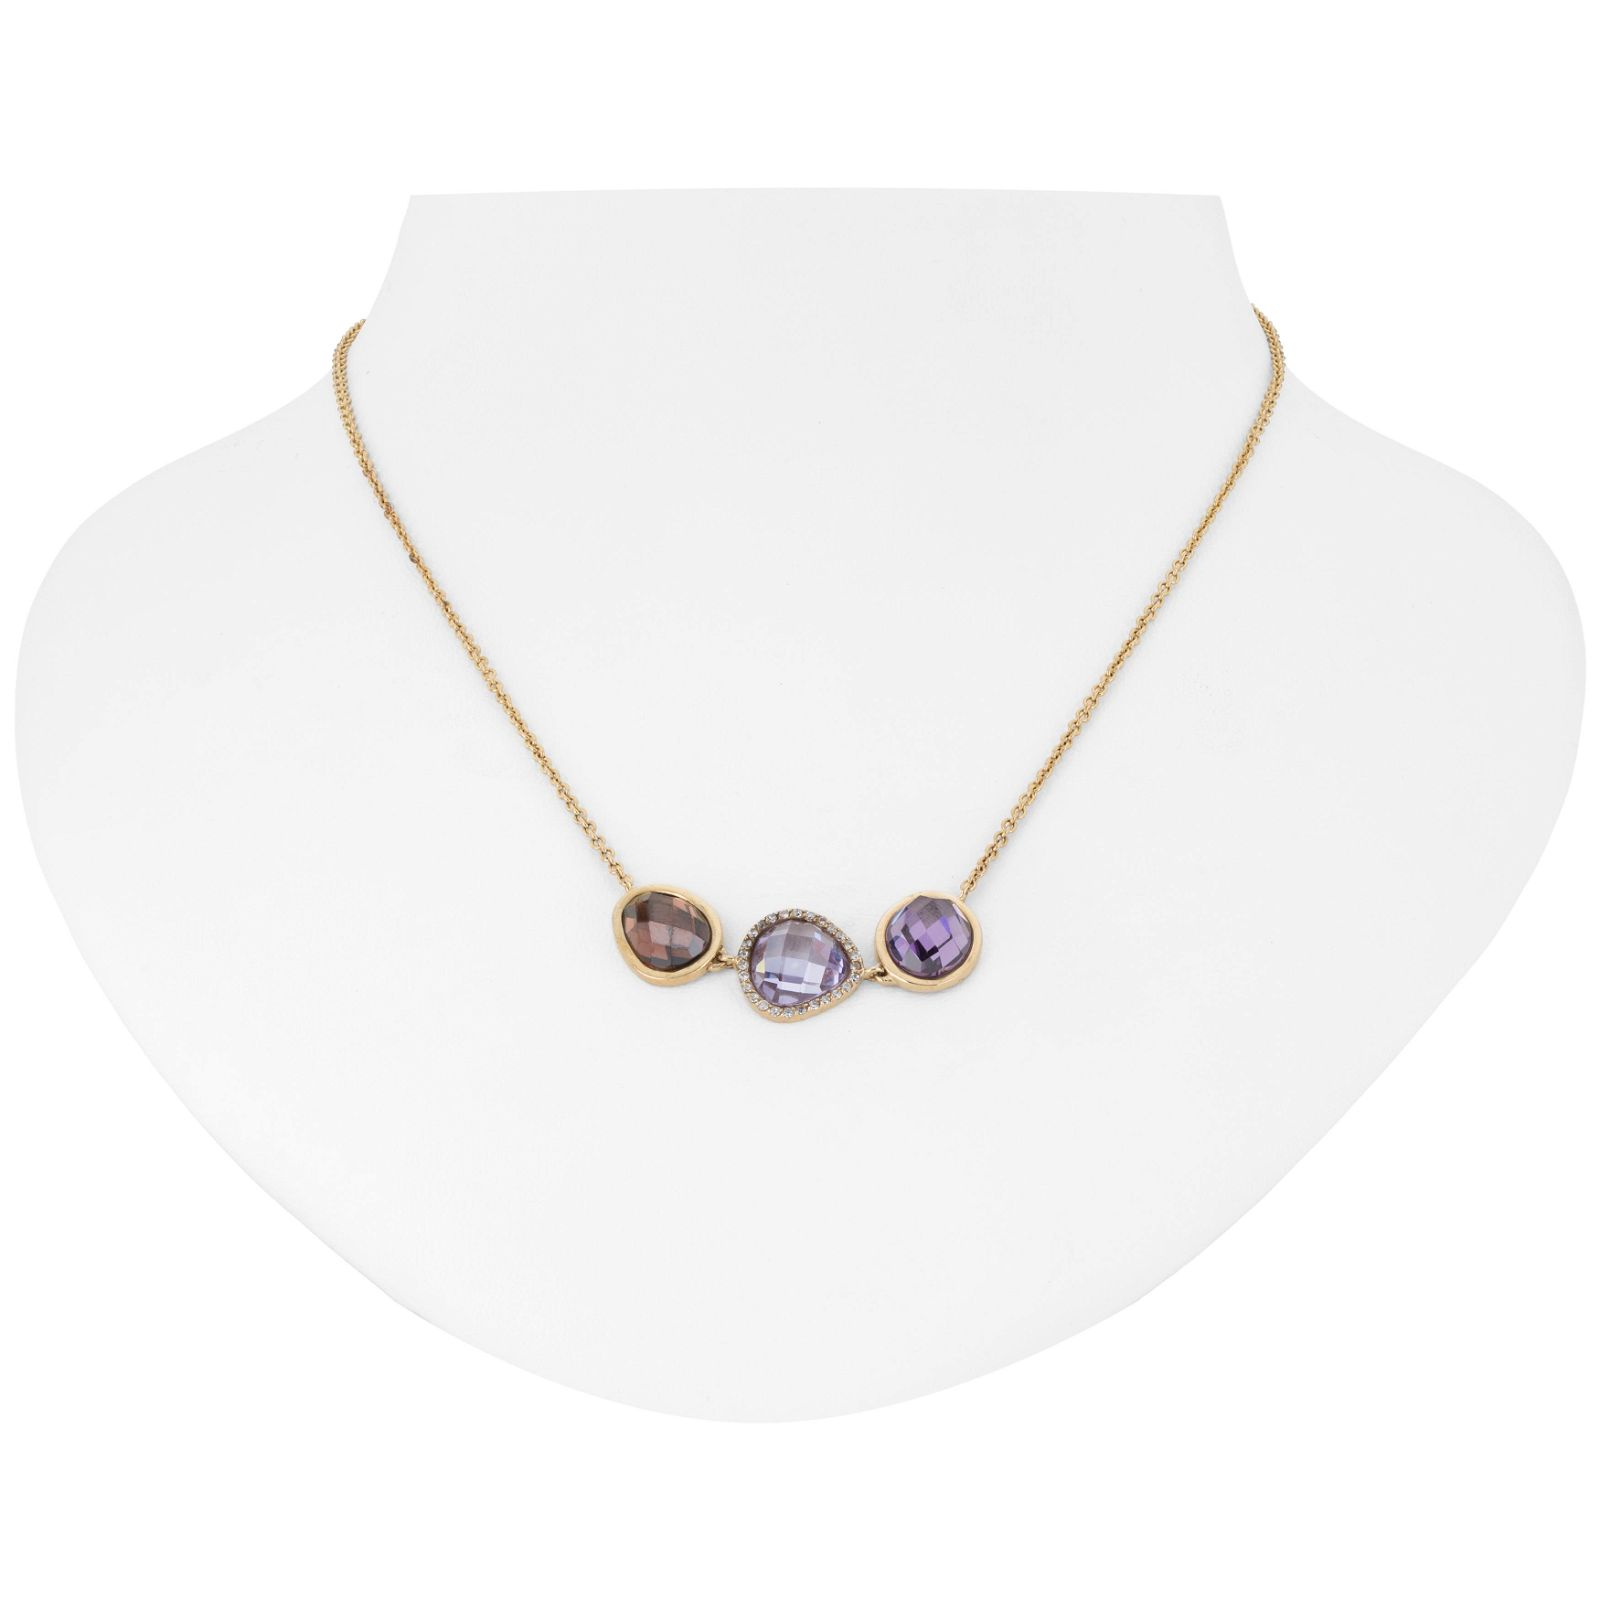 14K Gold over Silver 3 Stone Halo Necklace